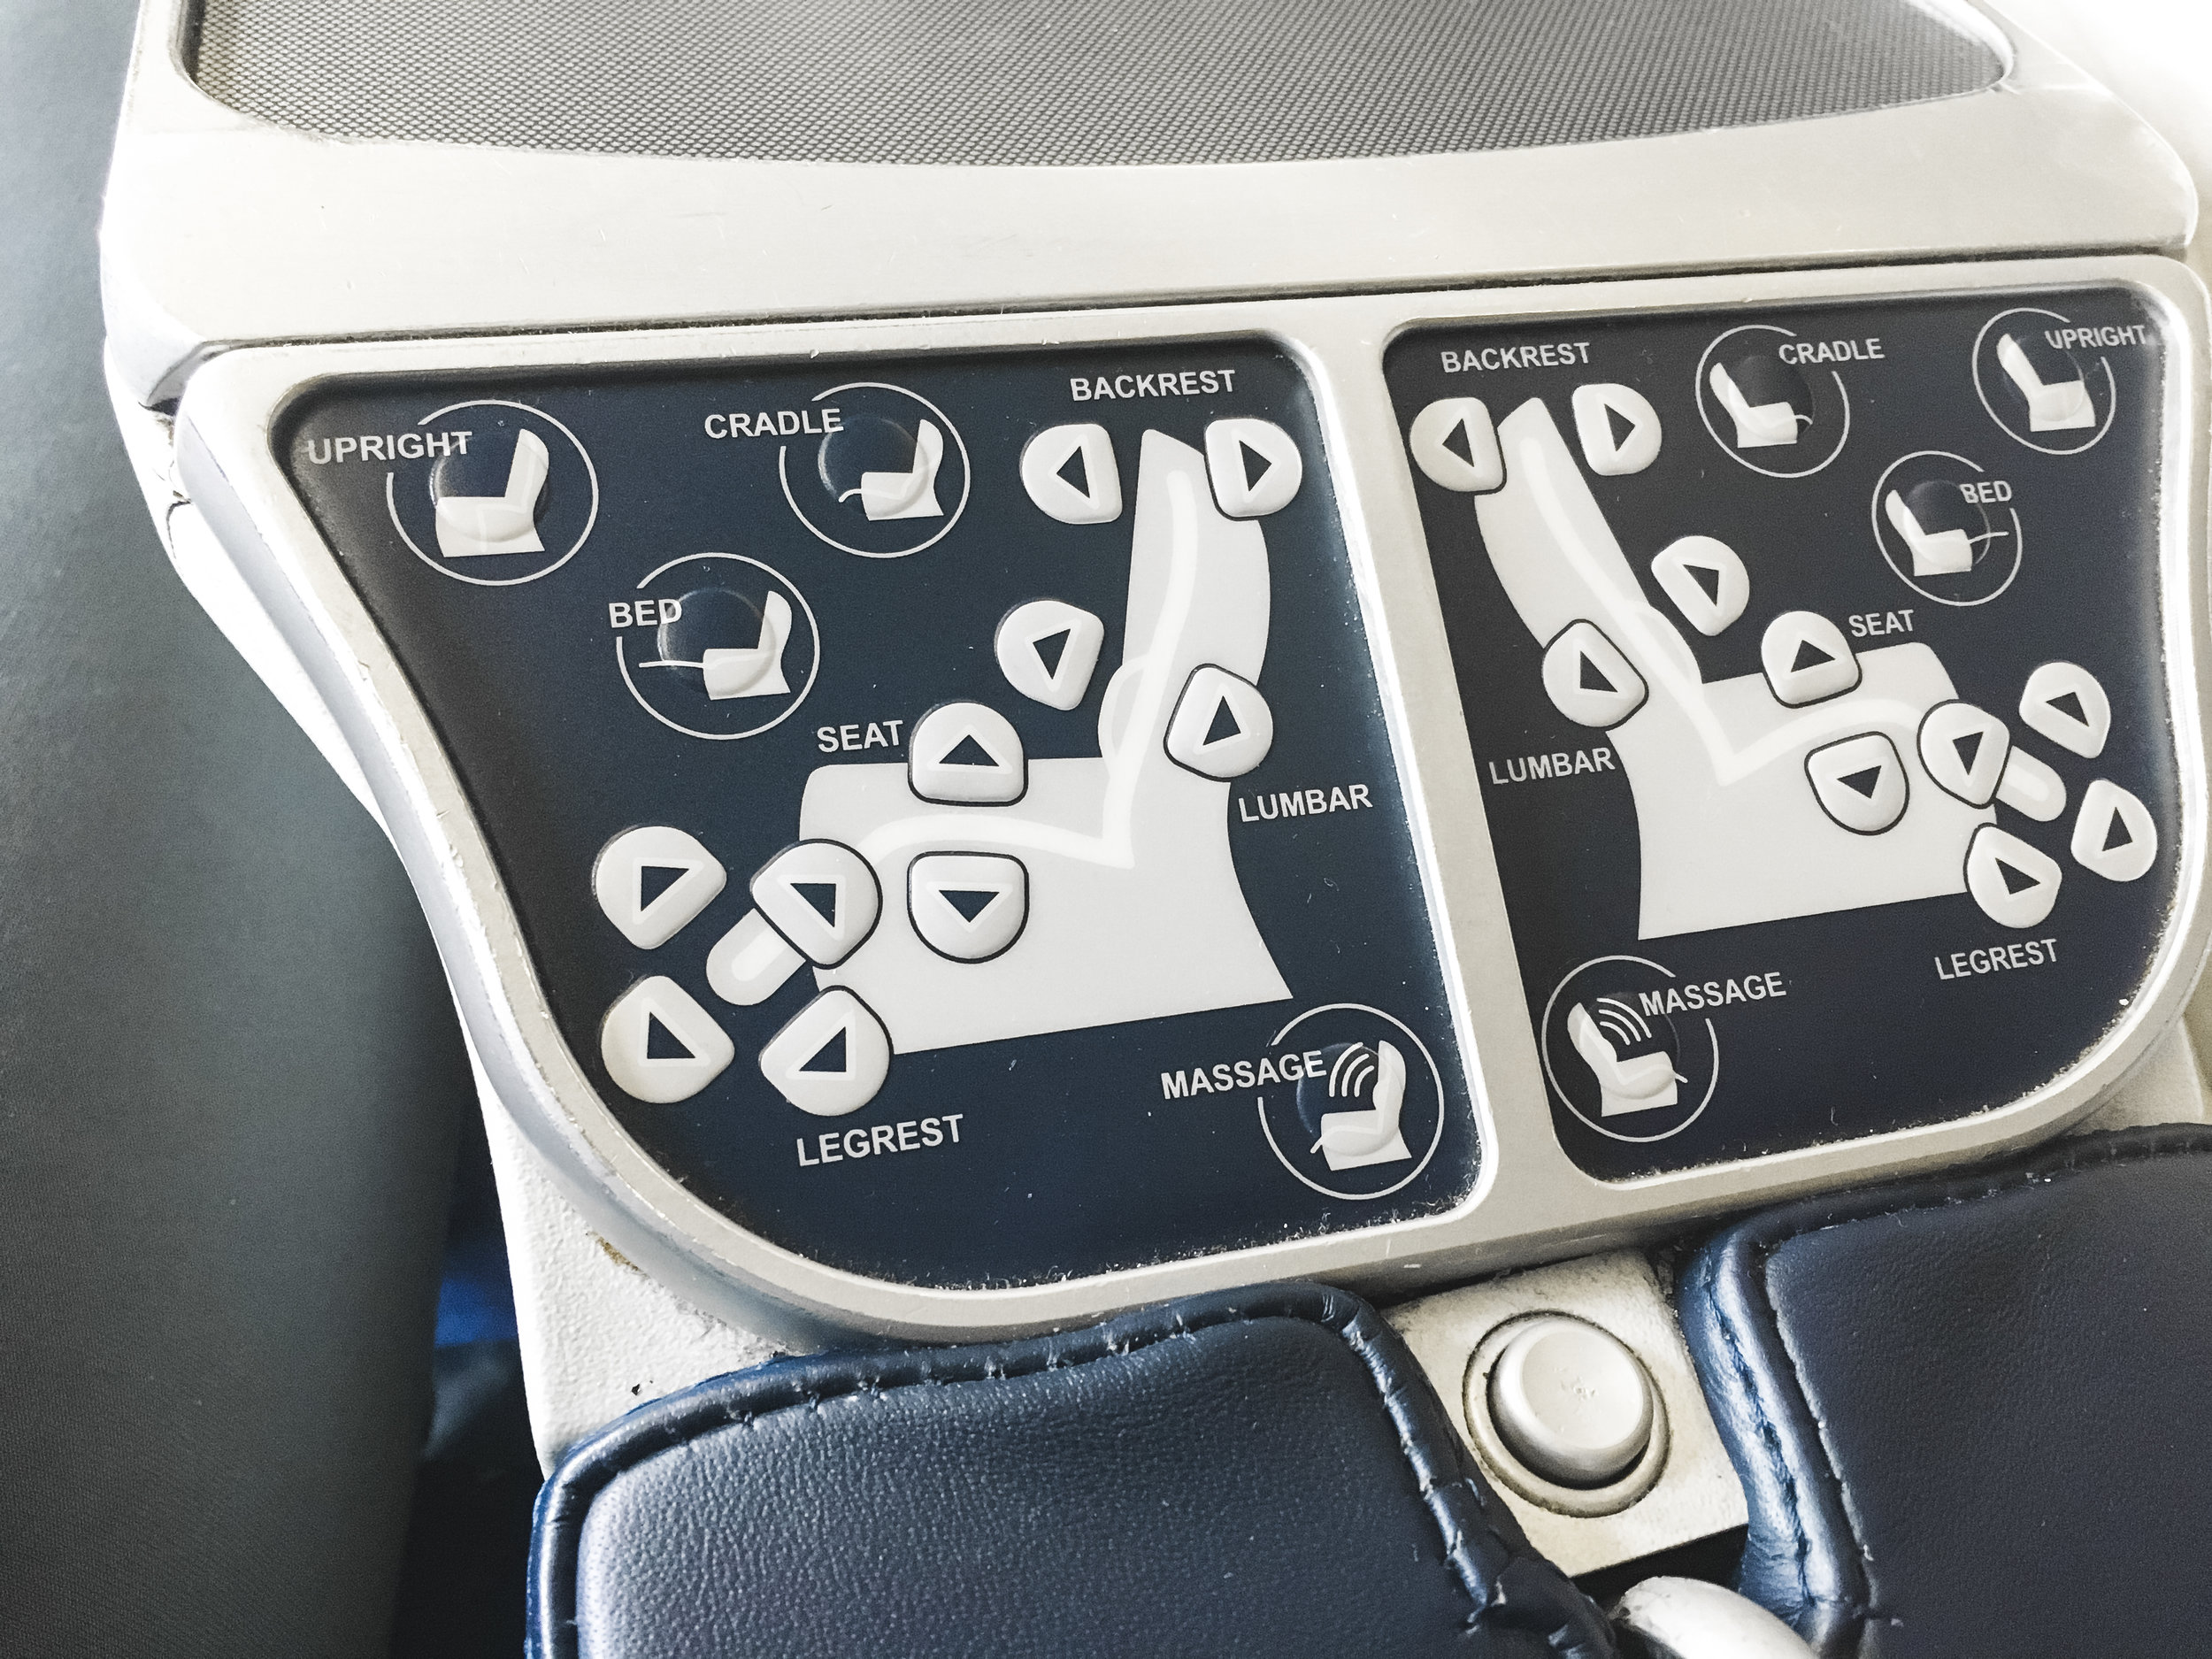 Seat controls. well used, to put it lightly.